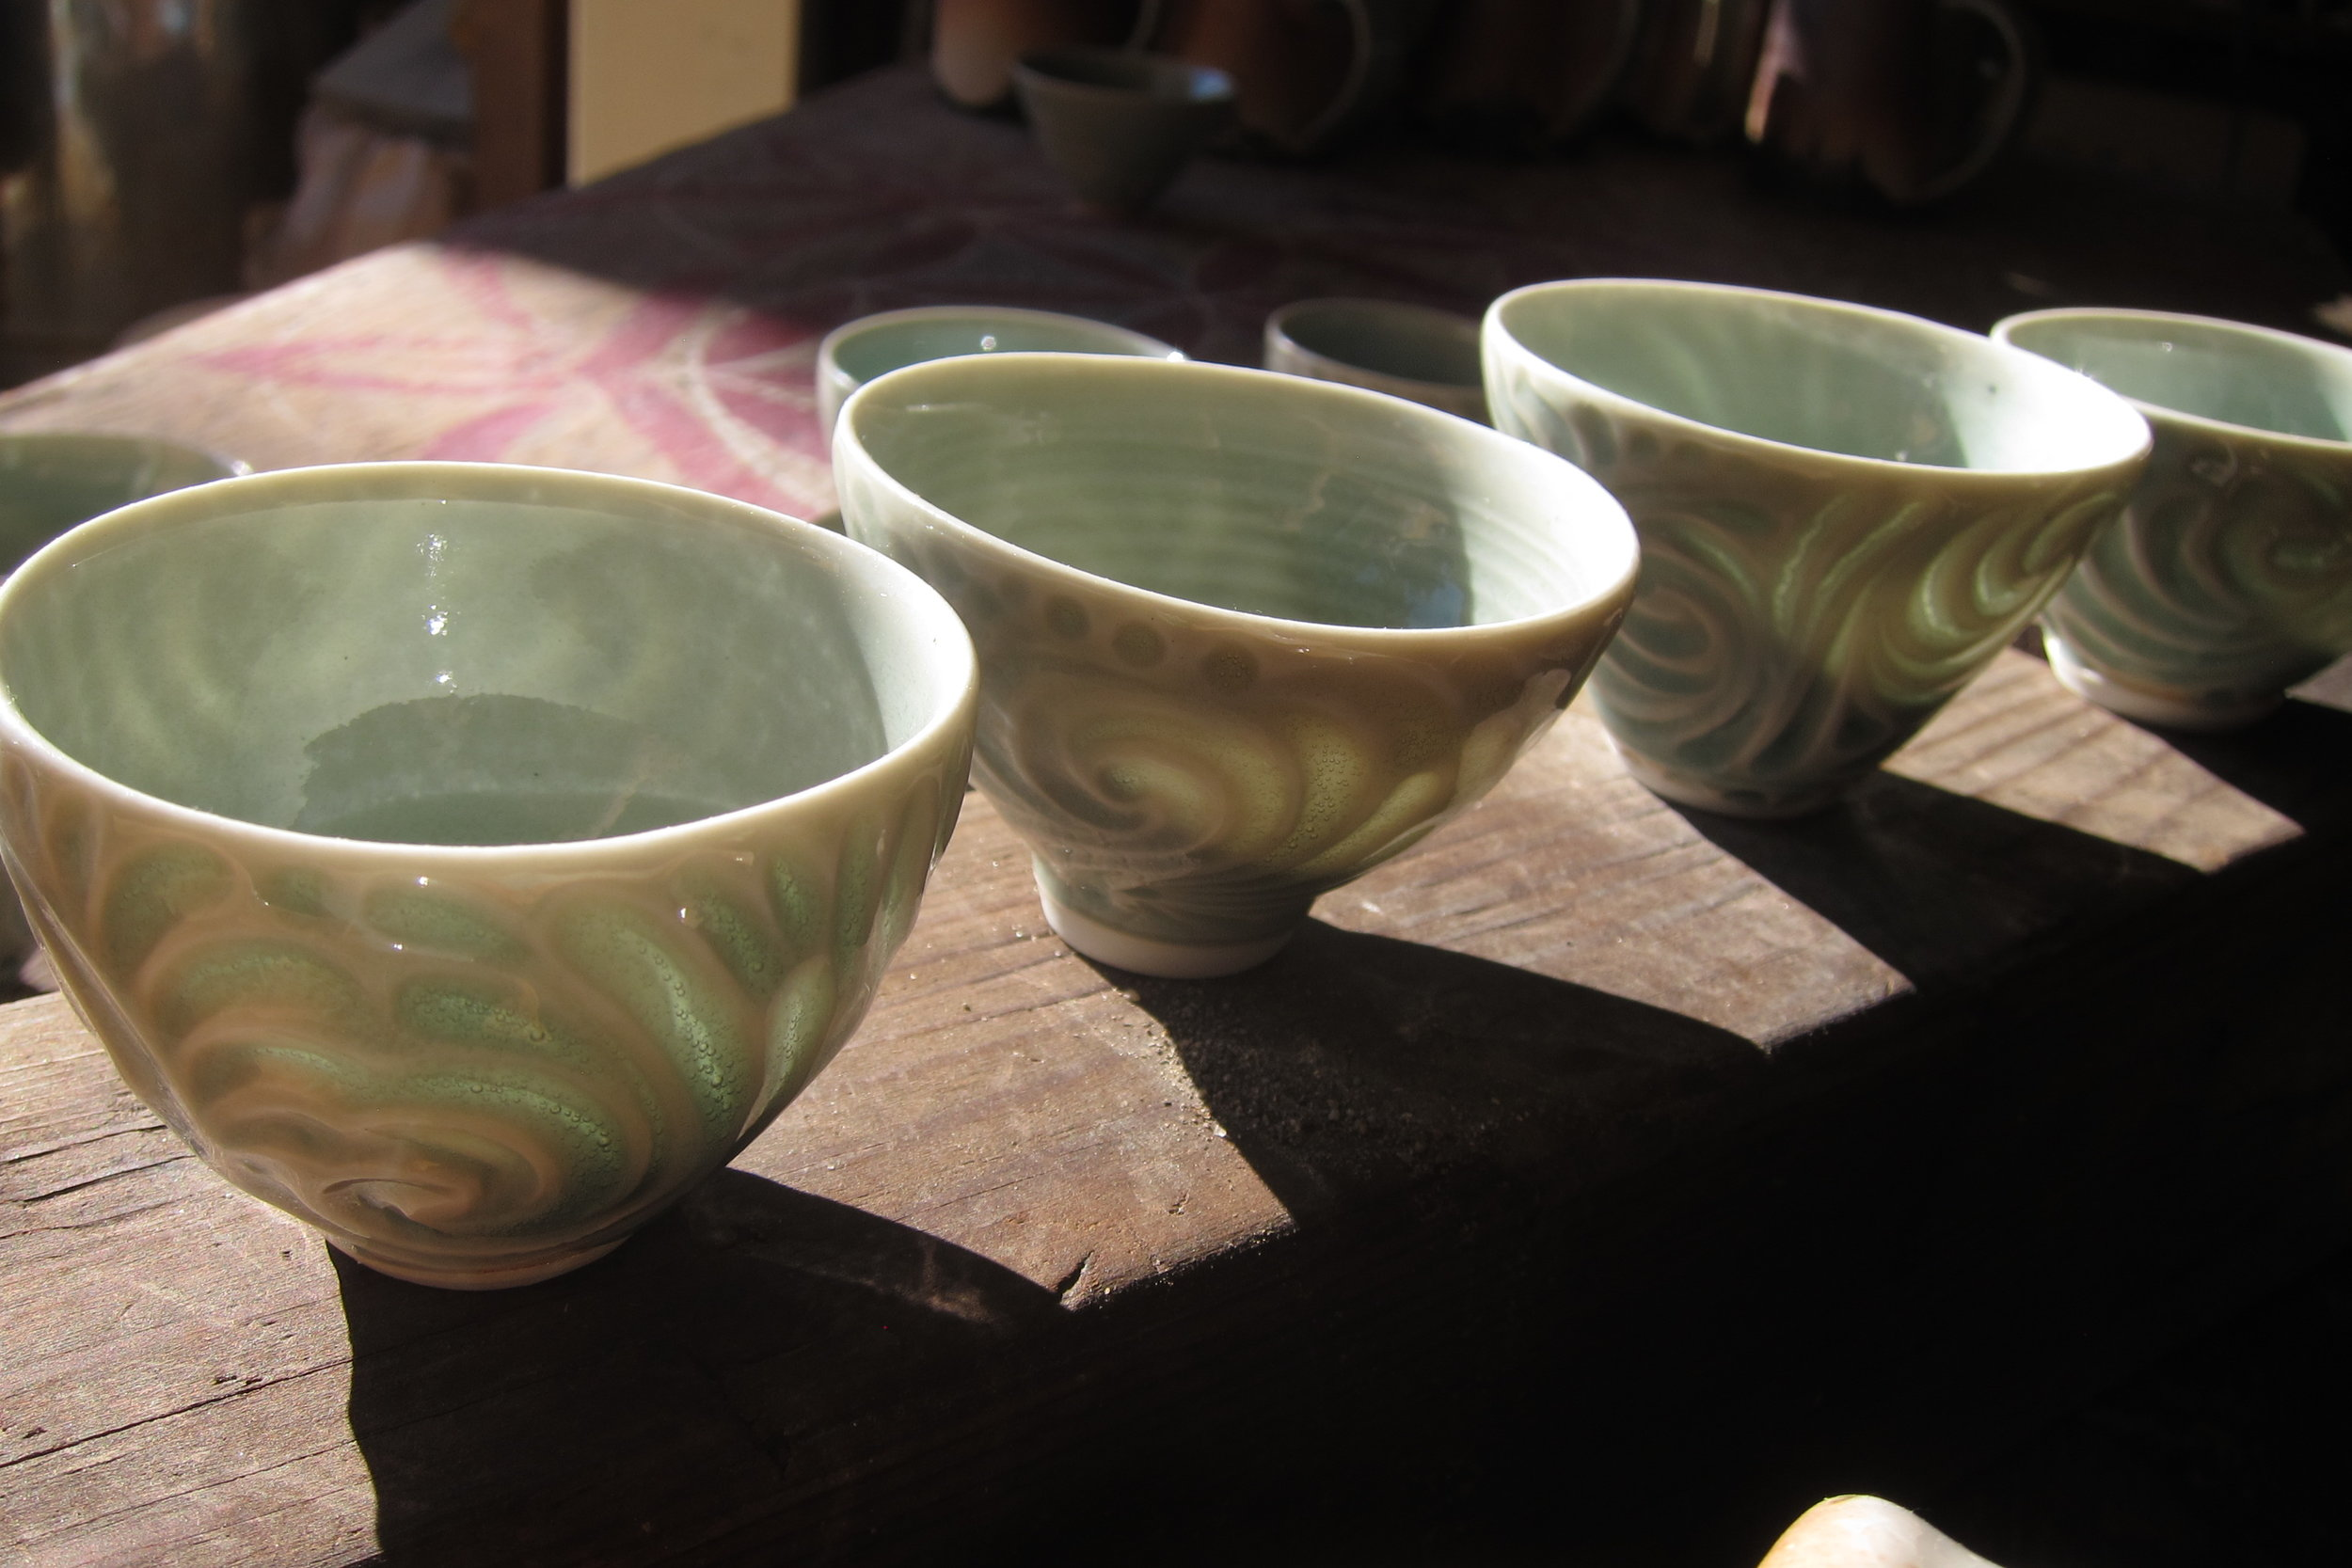 Carved porcelain tea cups showing off their translucency.